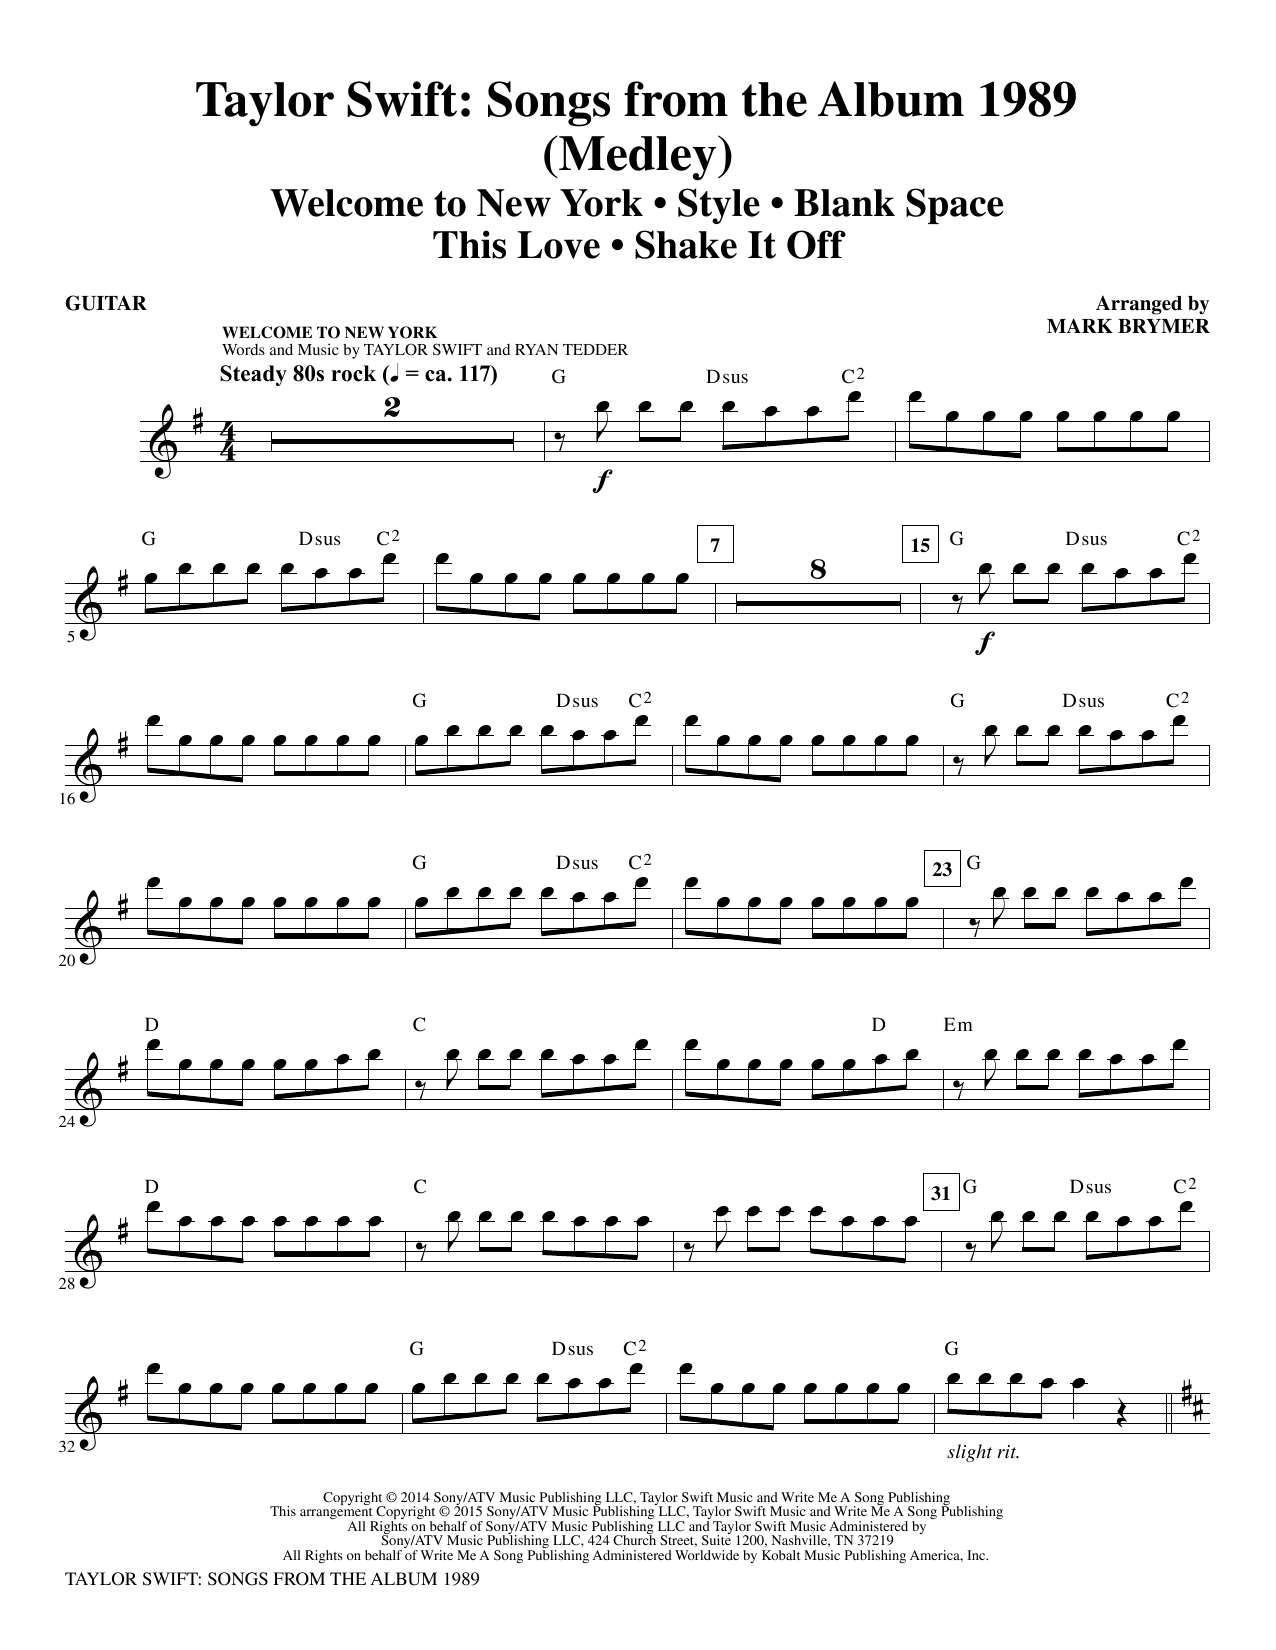 Taylor Swift: Songs from the Album 1989 - Guitar Sheet Music